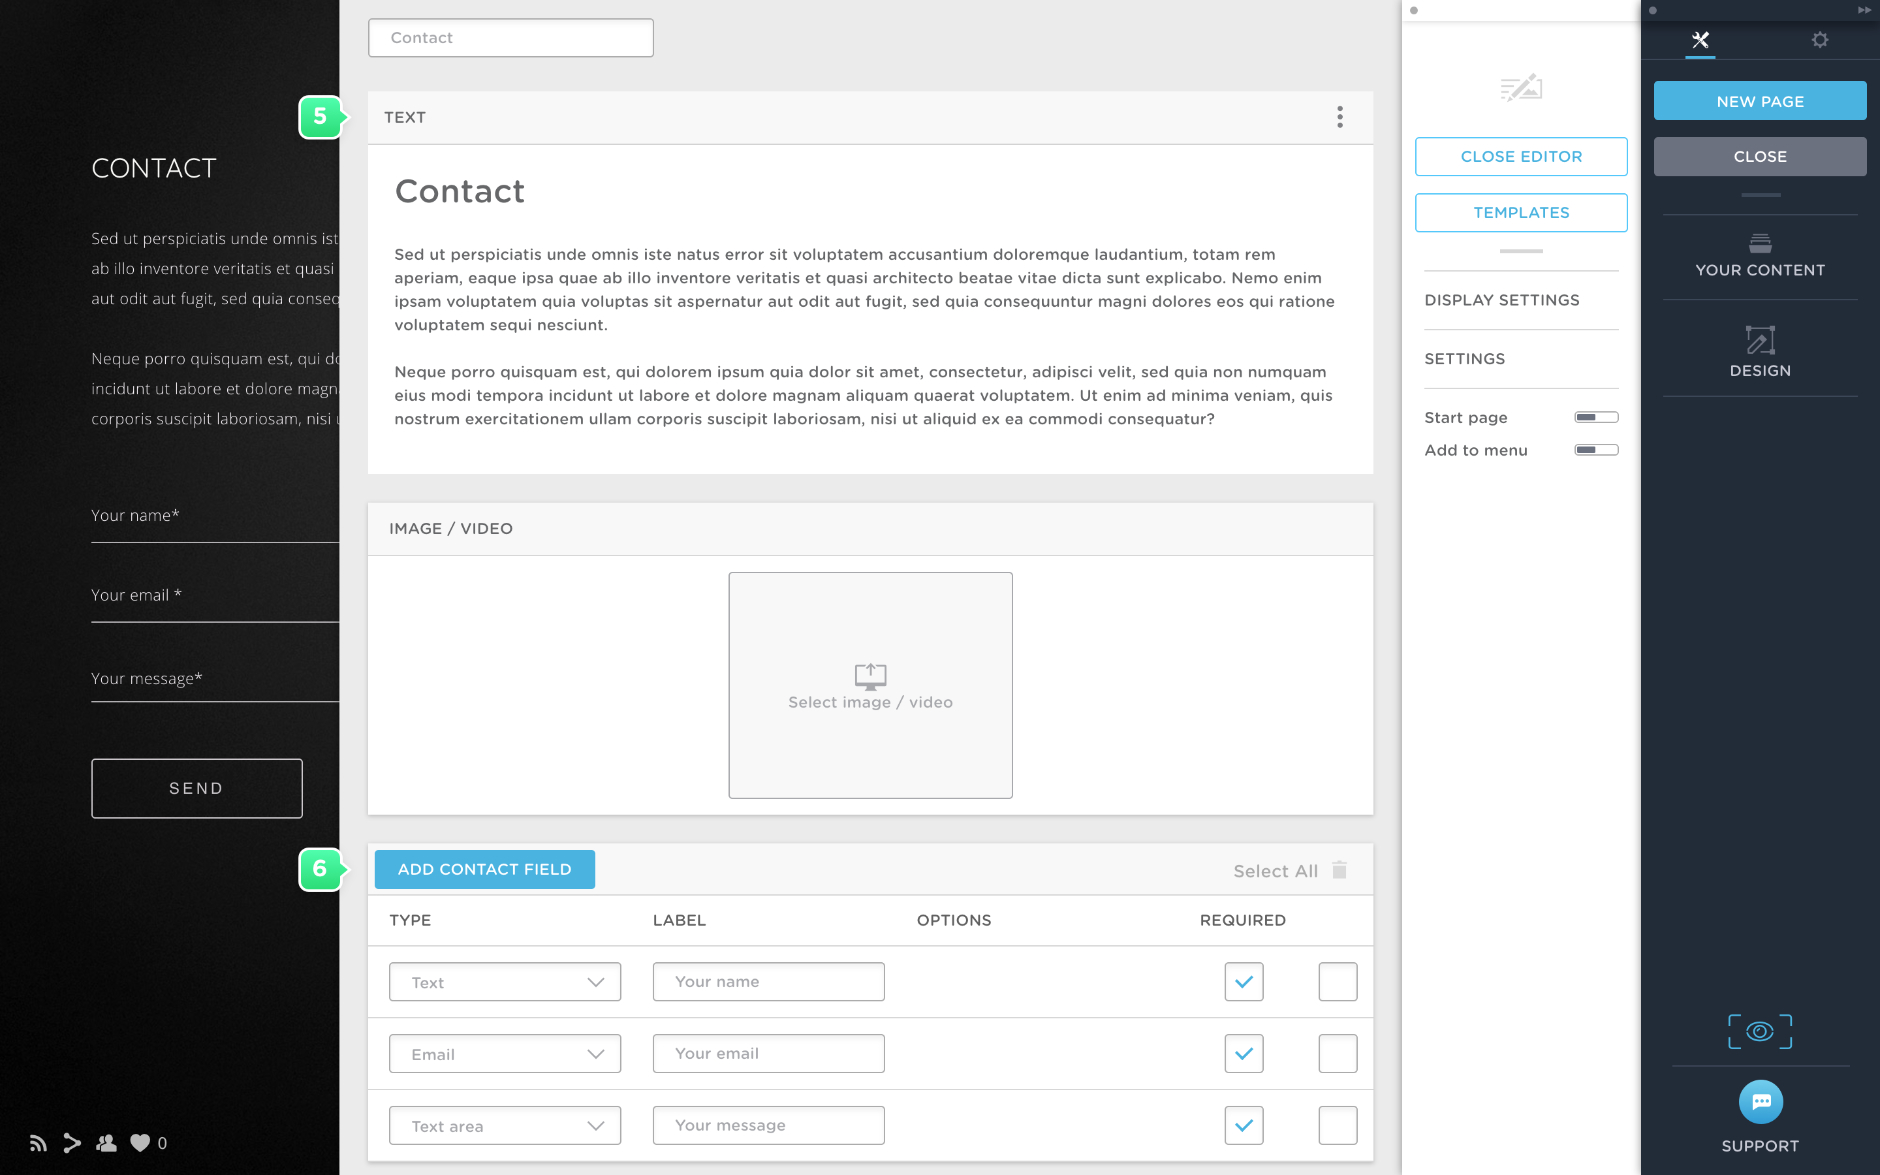 Create a contact page in Portfoliobox